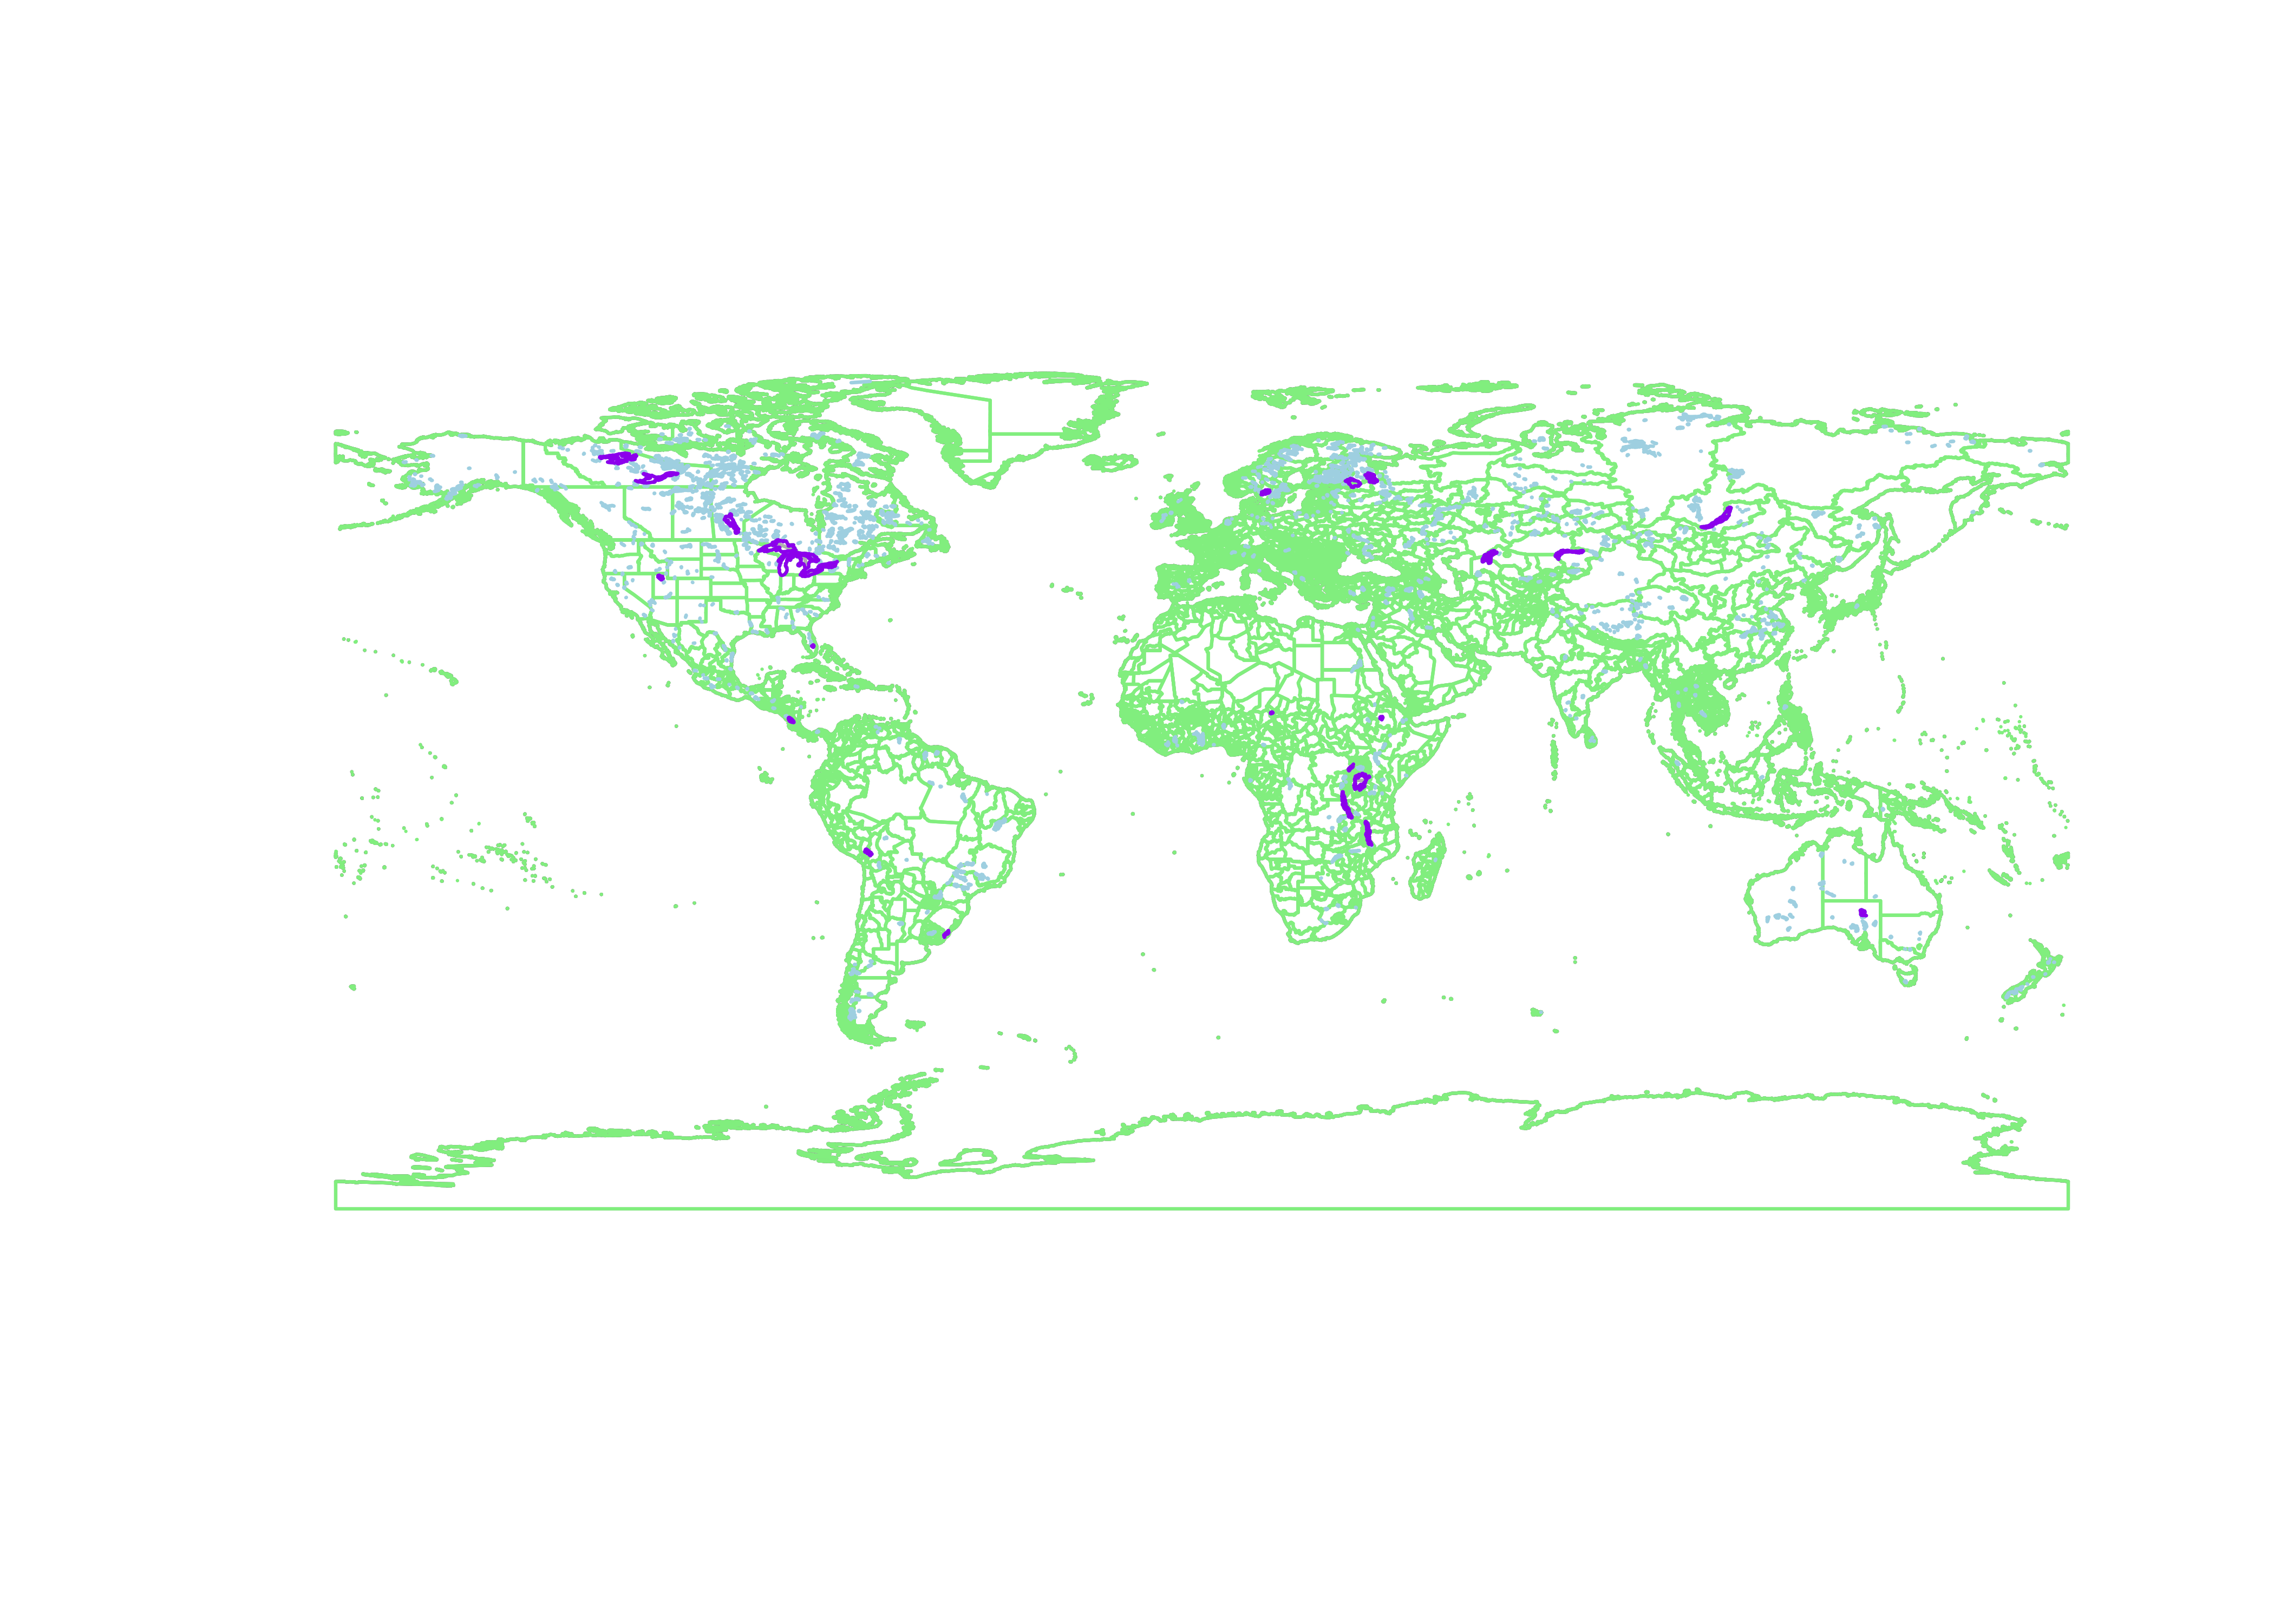 Maps in R (2)